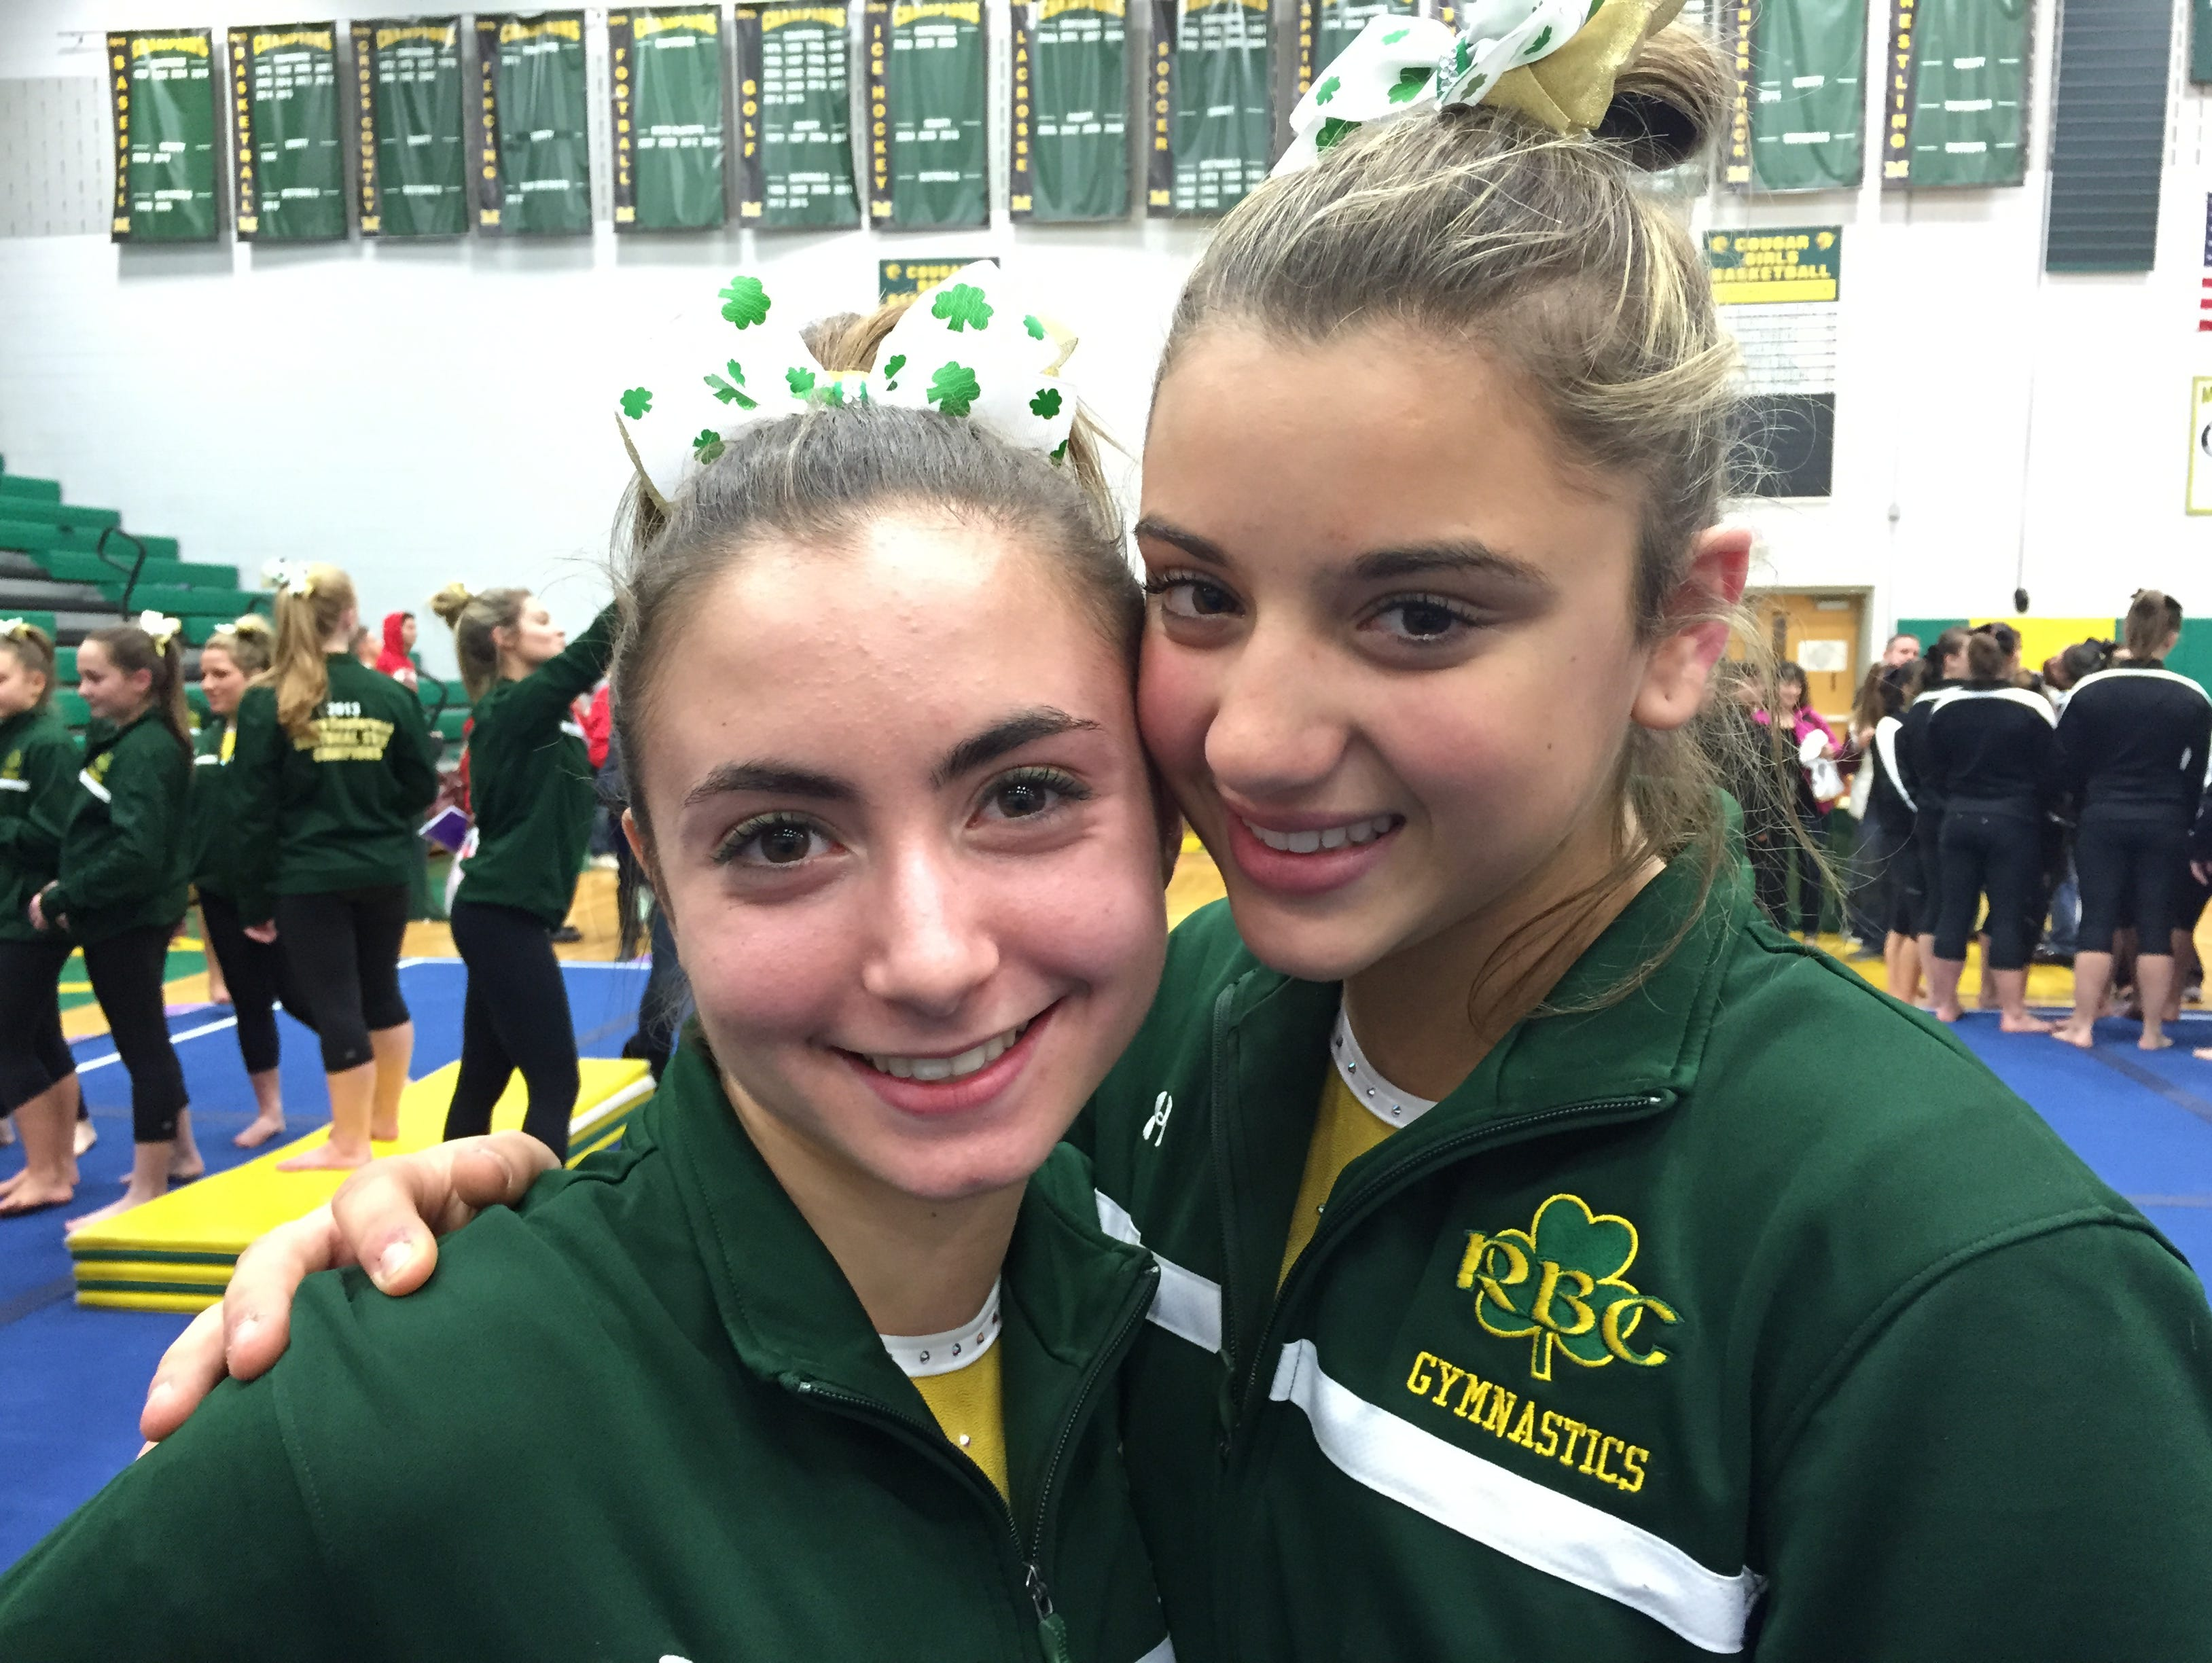 Red Bank Catholic's Nicolette DiPrisco (left) and Ally Cucich are all smiles after their team's state gymnastics title.